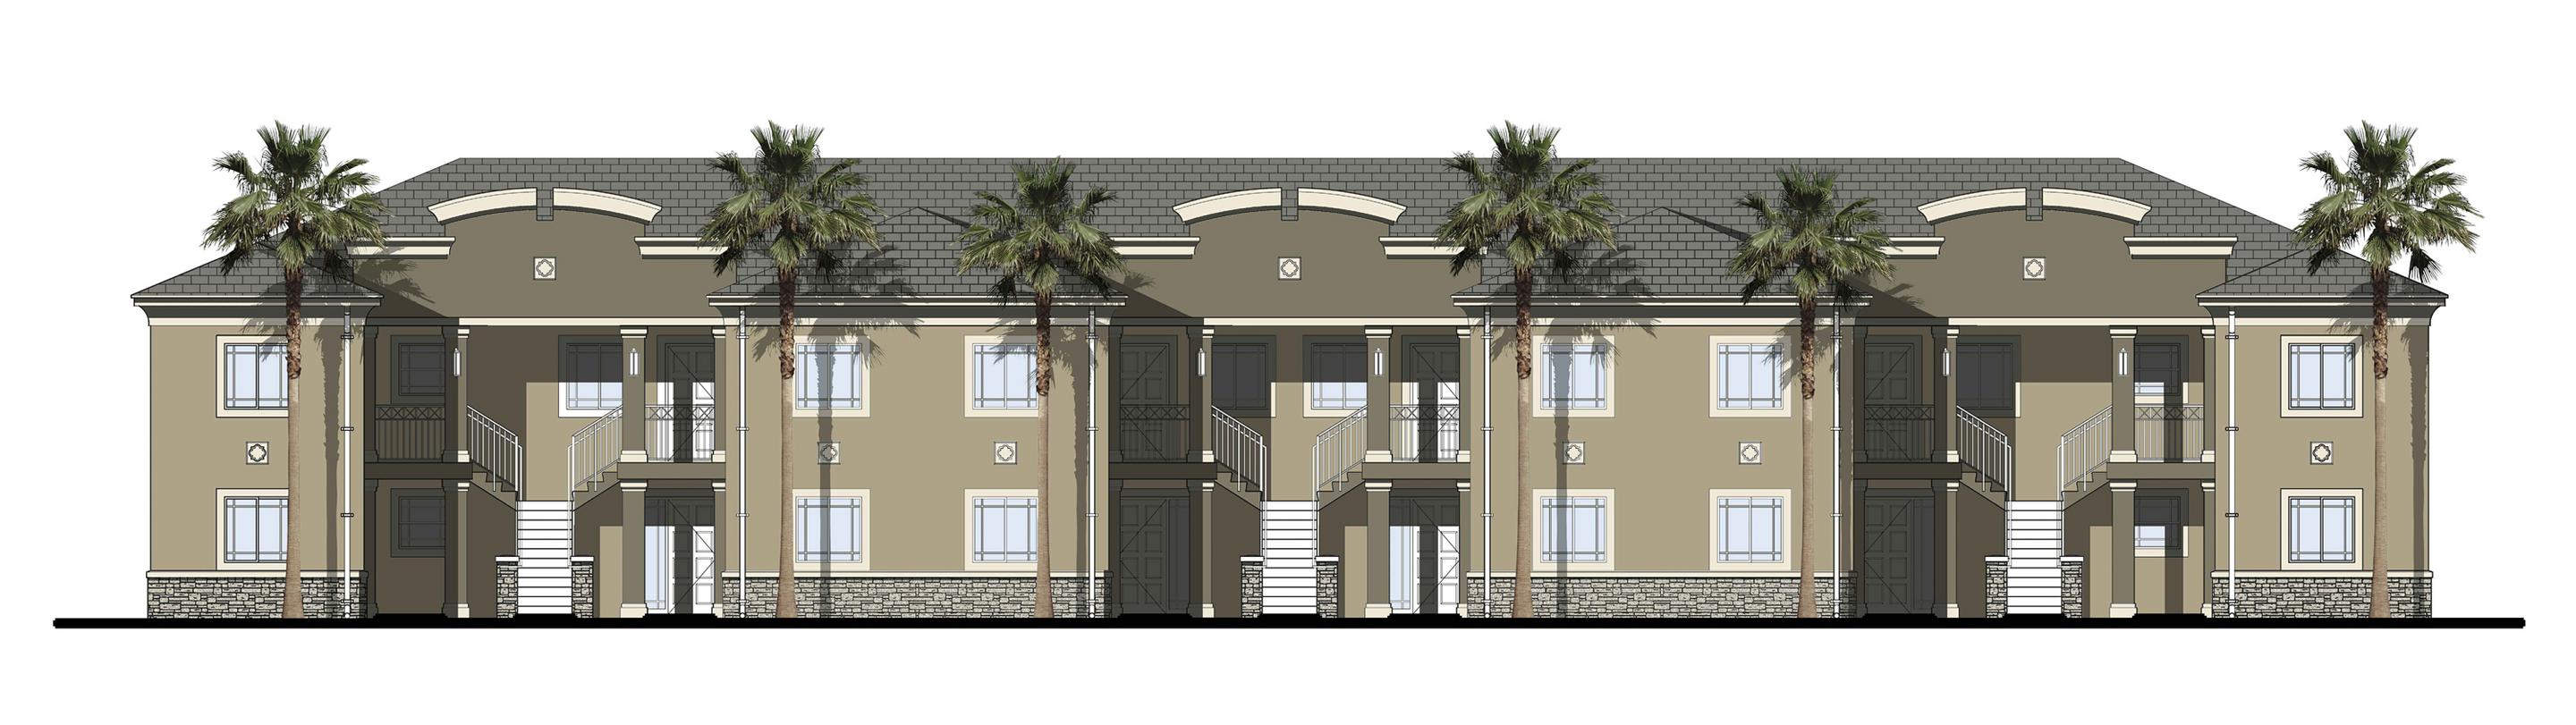 Luxury Rental Community With 216 Units Planned For Hialeah